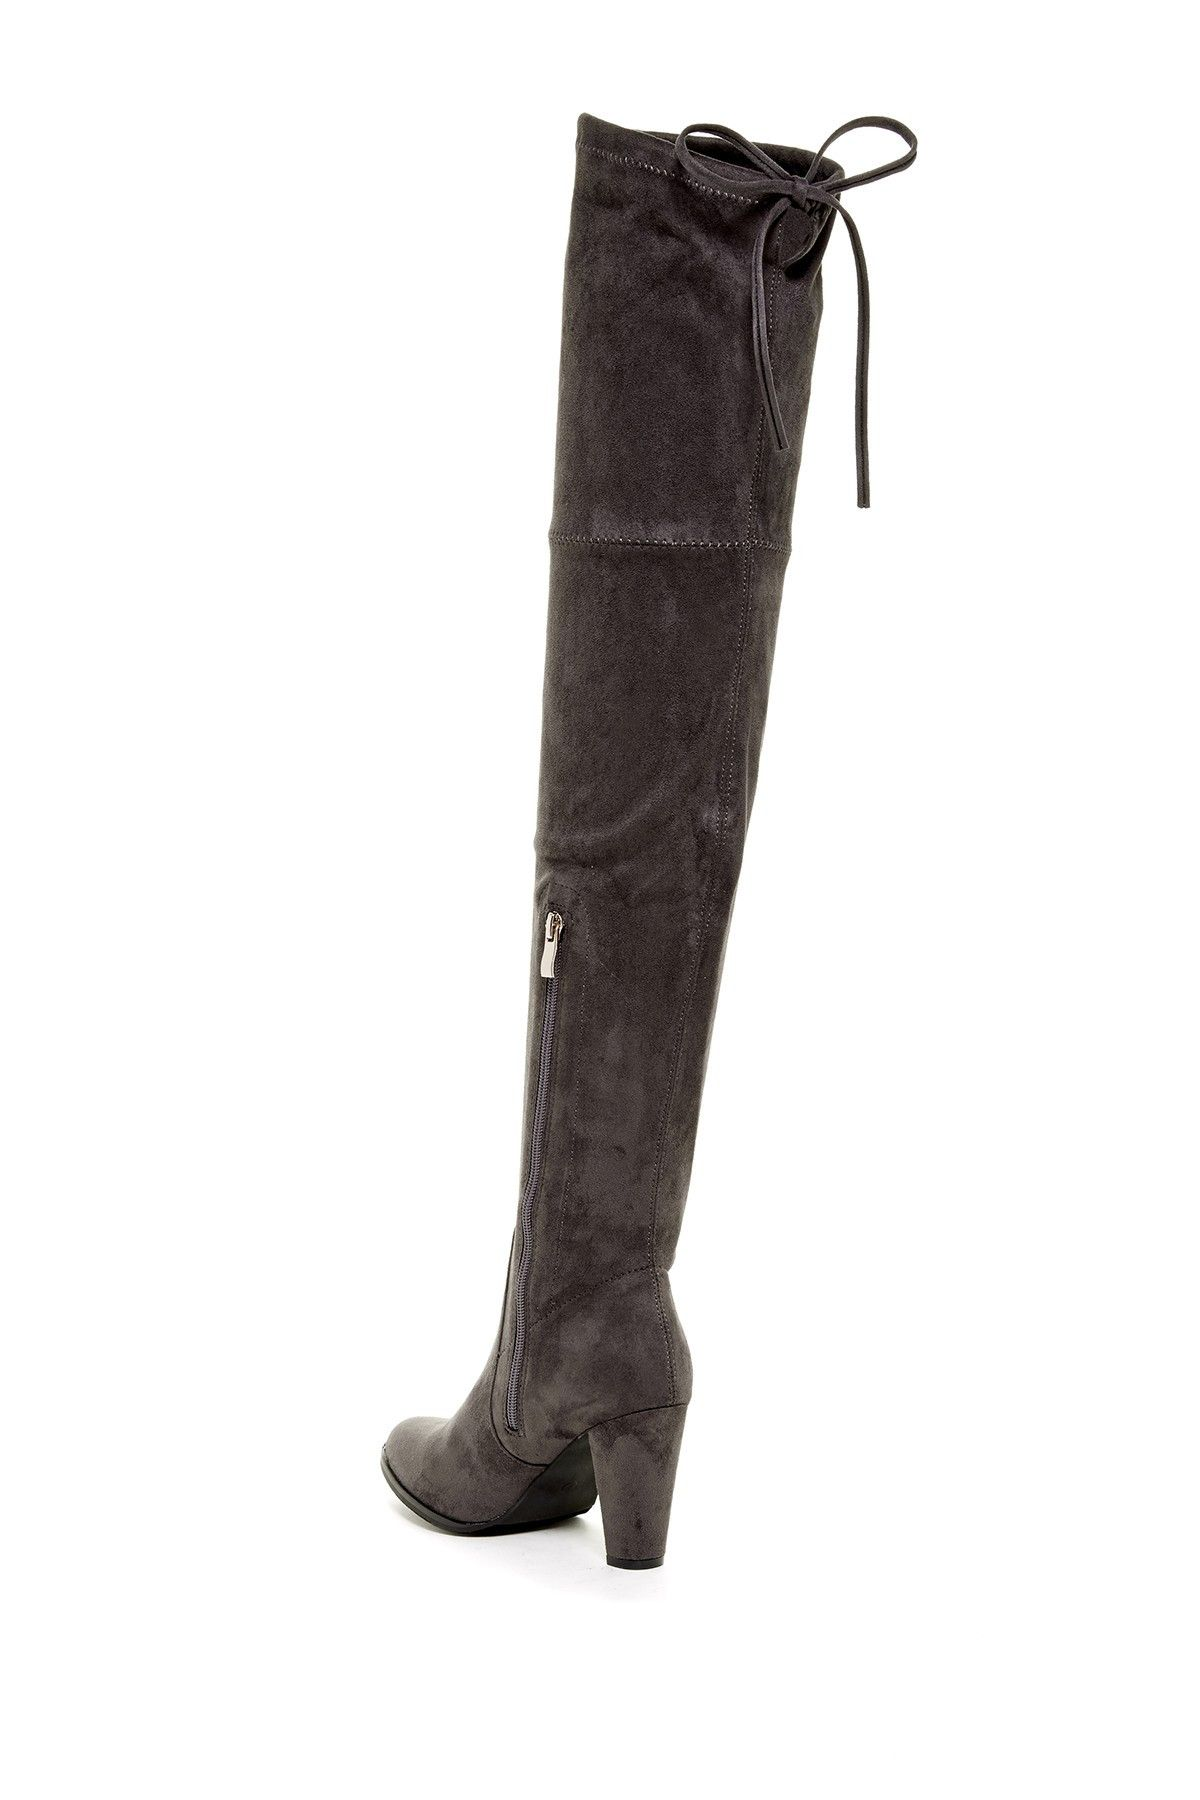 c67ecef28 Catherine Catherine Malandrino - Sorcha Faux Fur Footbed Over-The-Knee Boot  at Nordstrom Rack. Free Shipping on orders over $100.